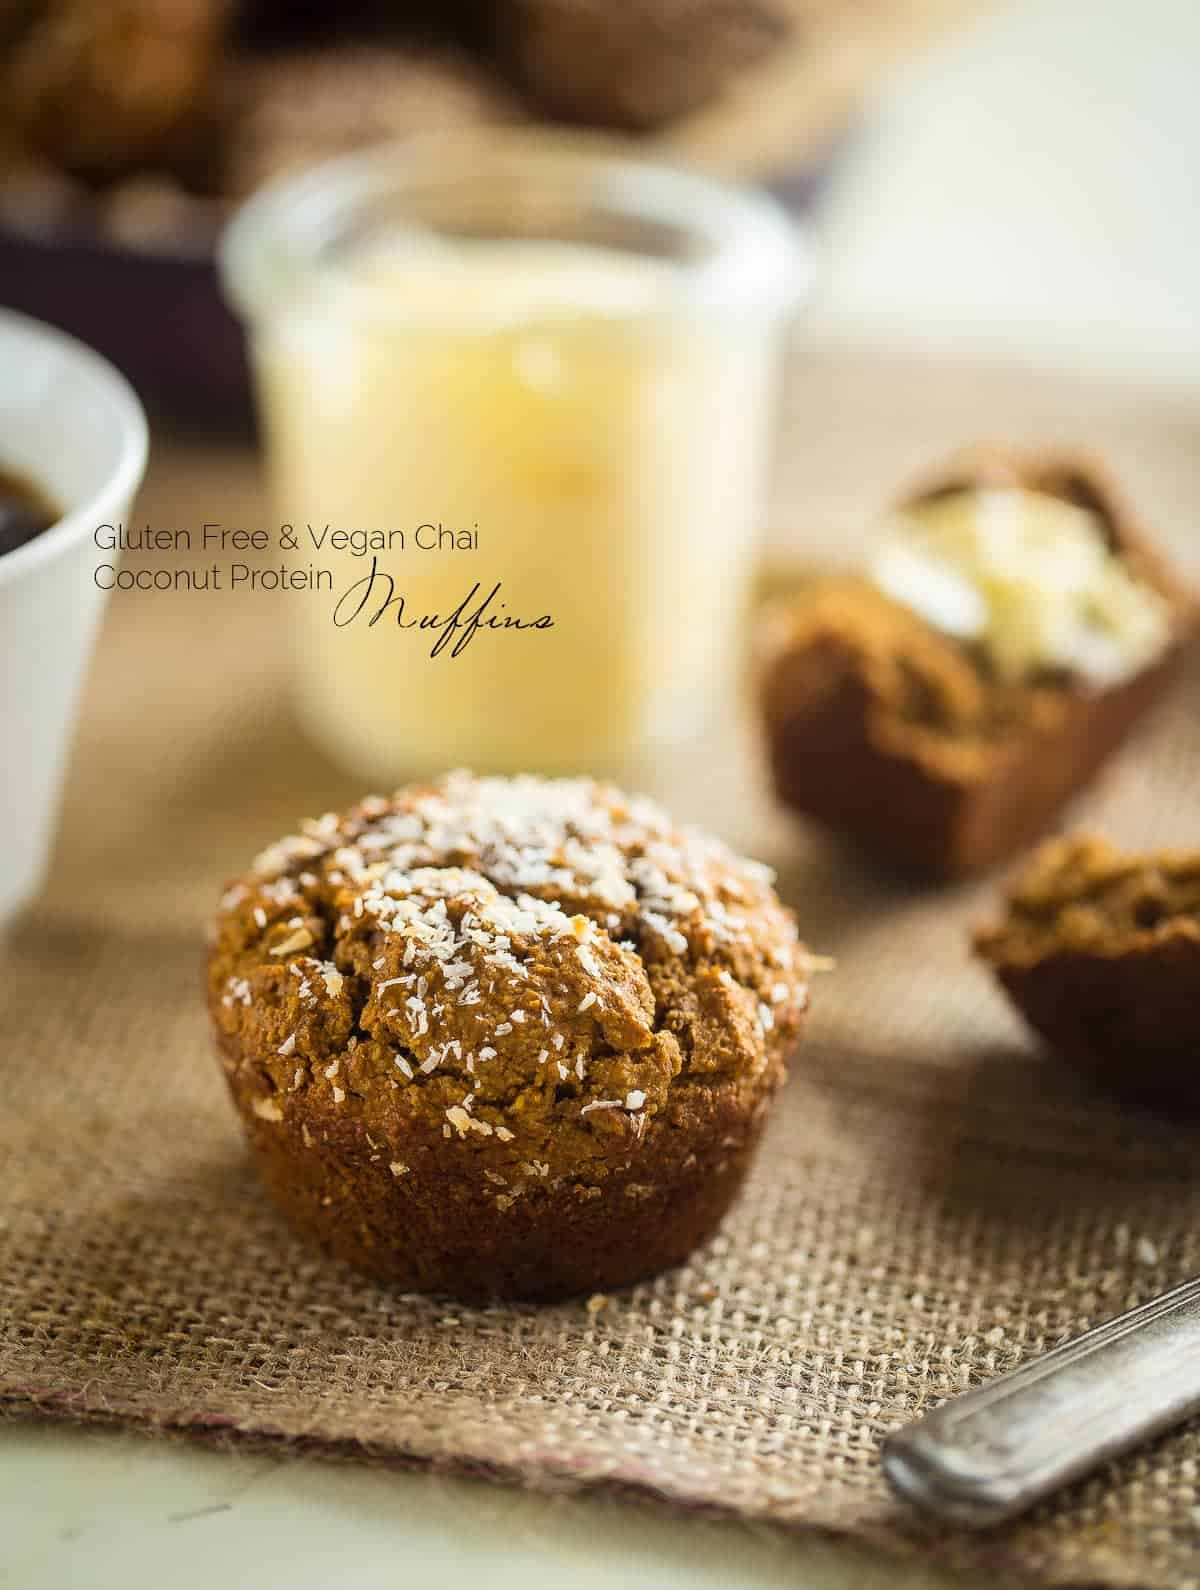 Gluten Free Vegan Vanilla Chai Protein Muffins - These are muffins are loaded with spicy-sweet chai flavor, protein and are SO easy to make! Perfect for a portable, healthy breakfast or snack that freezes well! | Foodfaithfitness.com | @FoodFaithFit